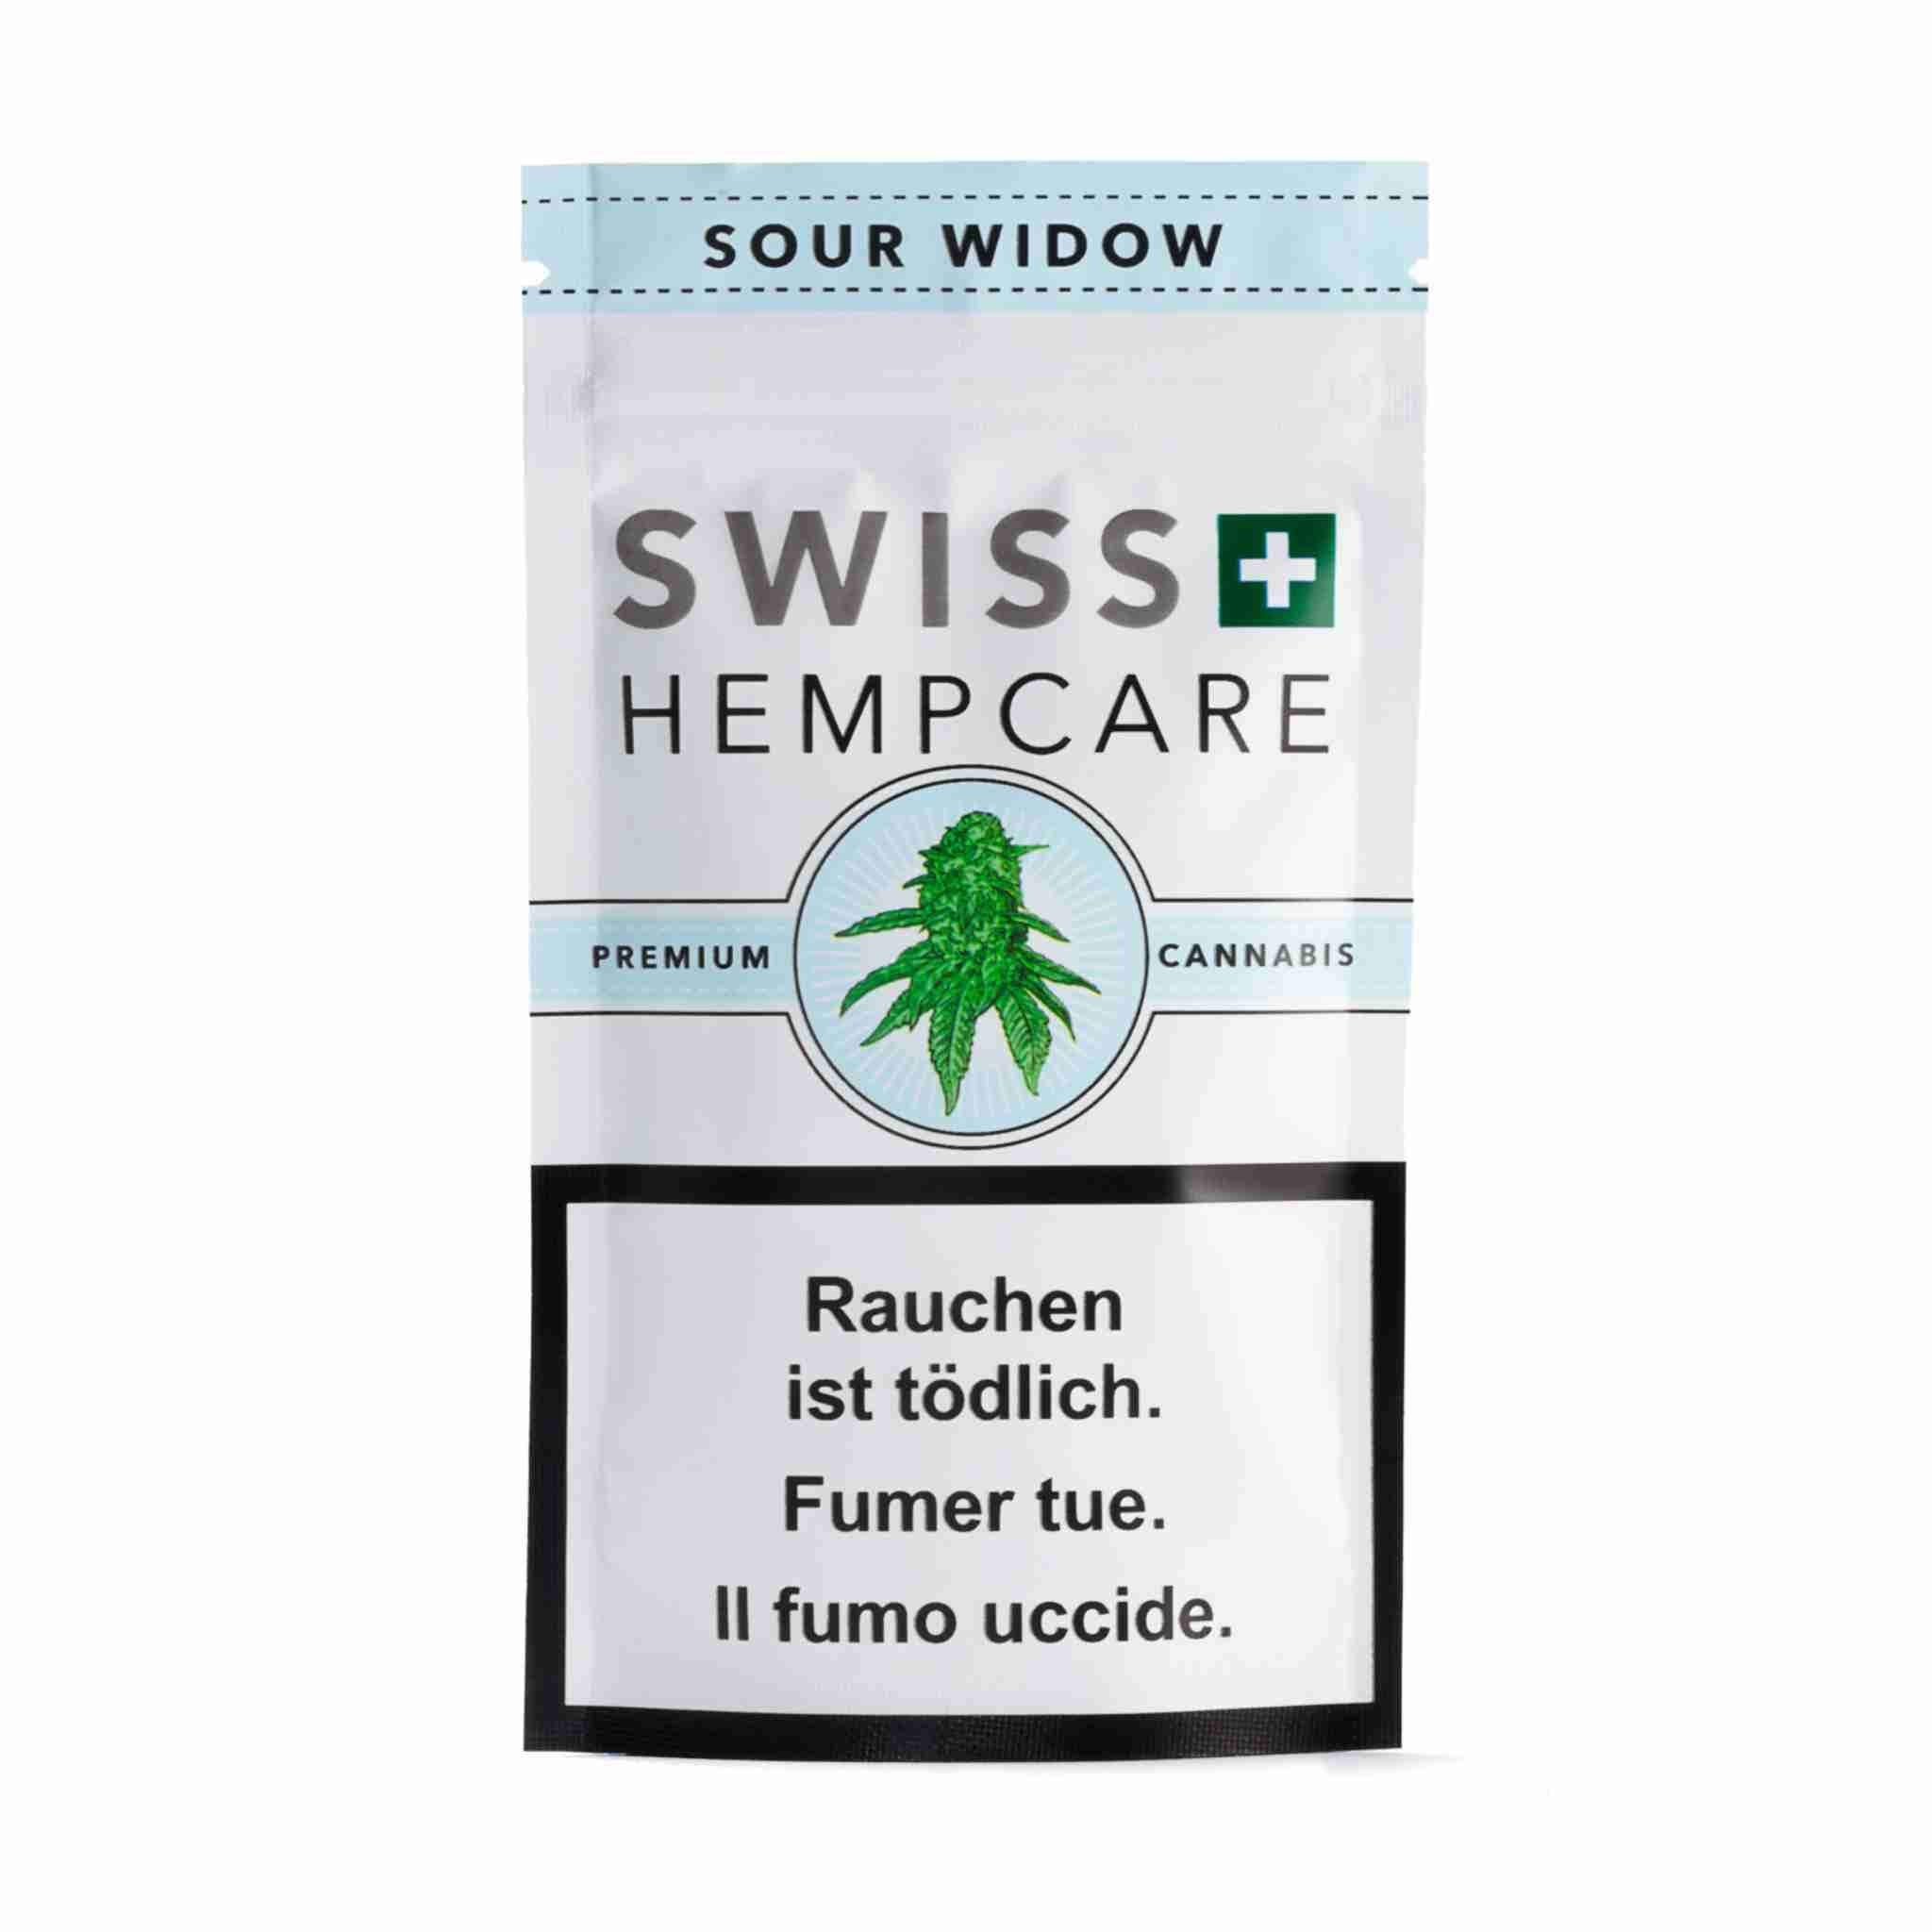 Swiss Hempcare - Sour Widow - CBD Cannabis - Buy online in uWeed shop - Switzerland